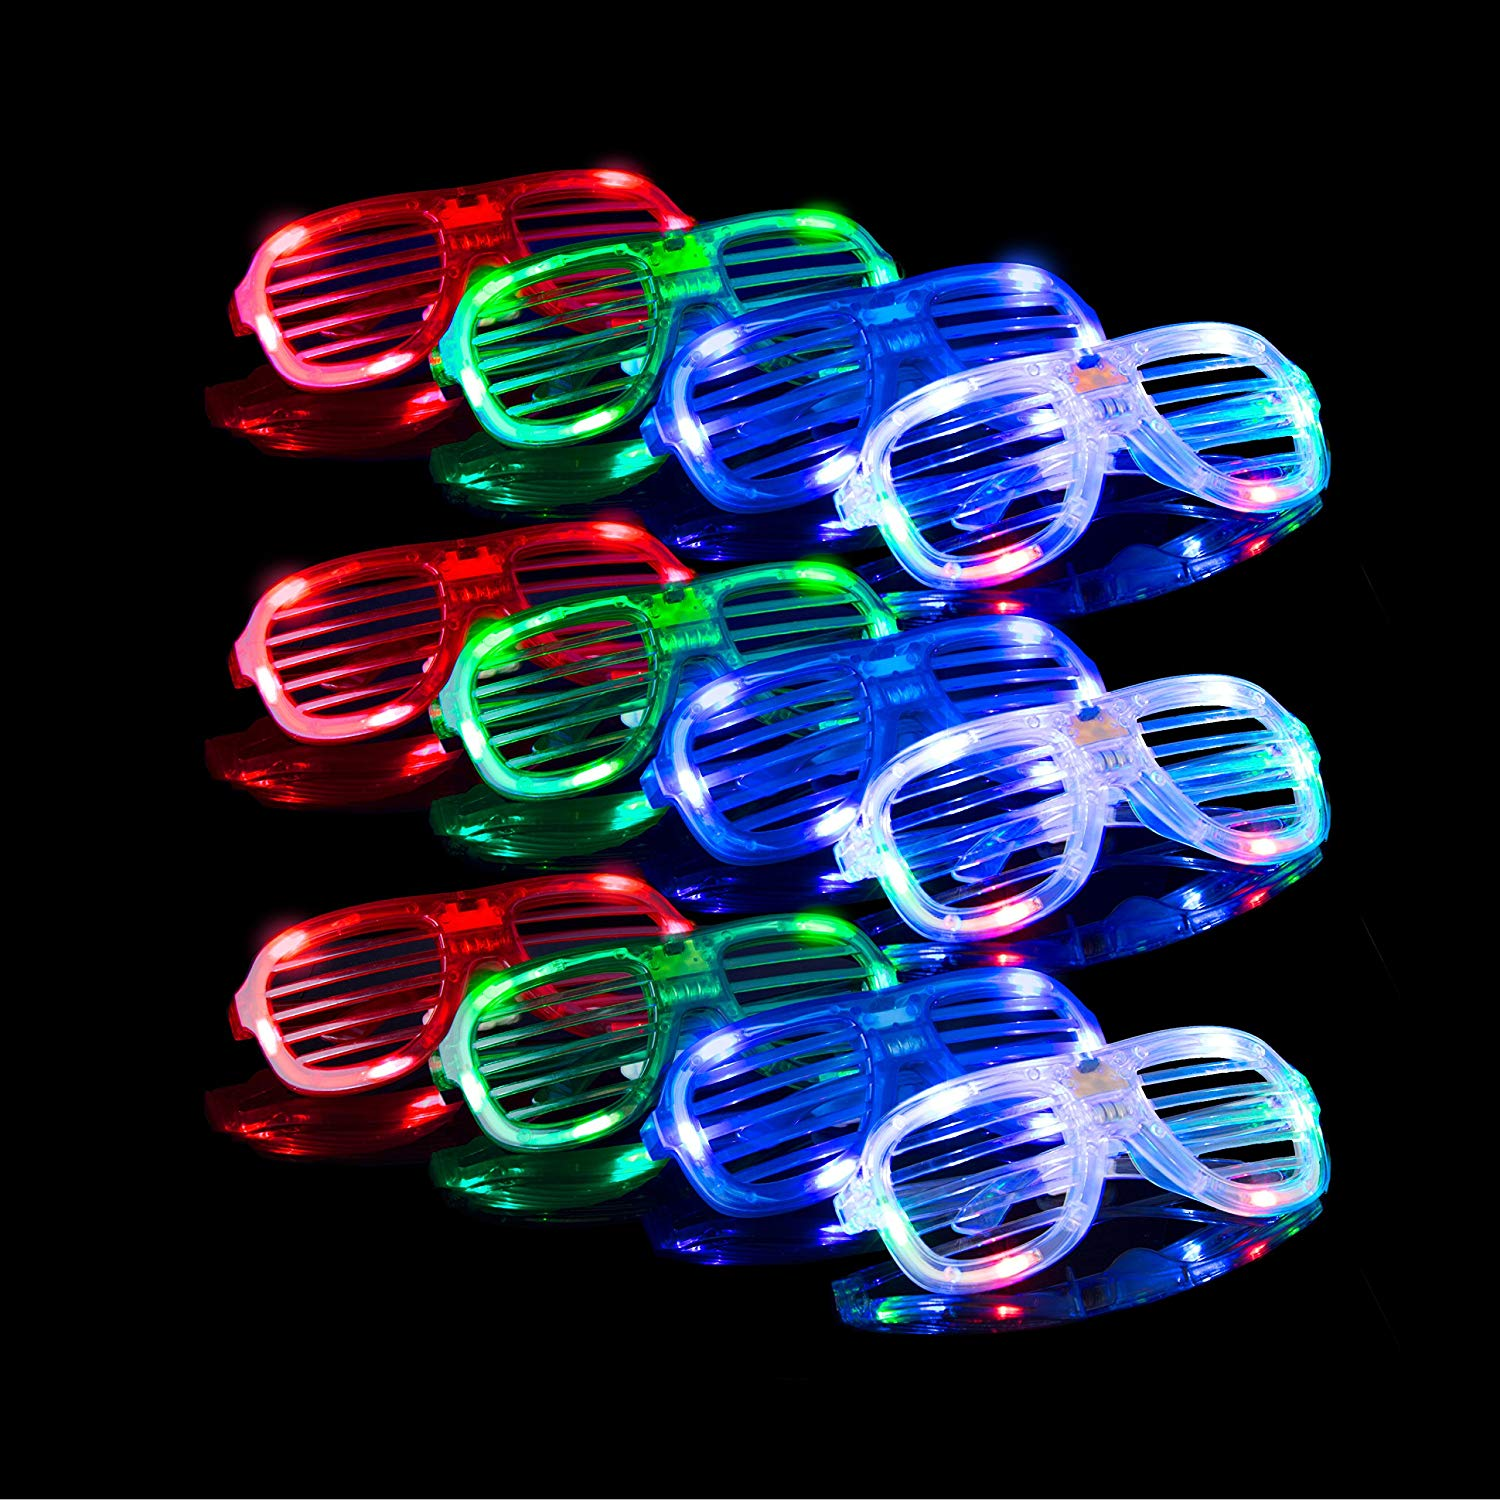 Villogó Led Multi Color Fénykiáltó Party Party Favor Játékszemüvegek Party Supplies 12 db